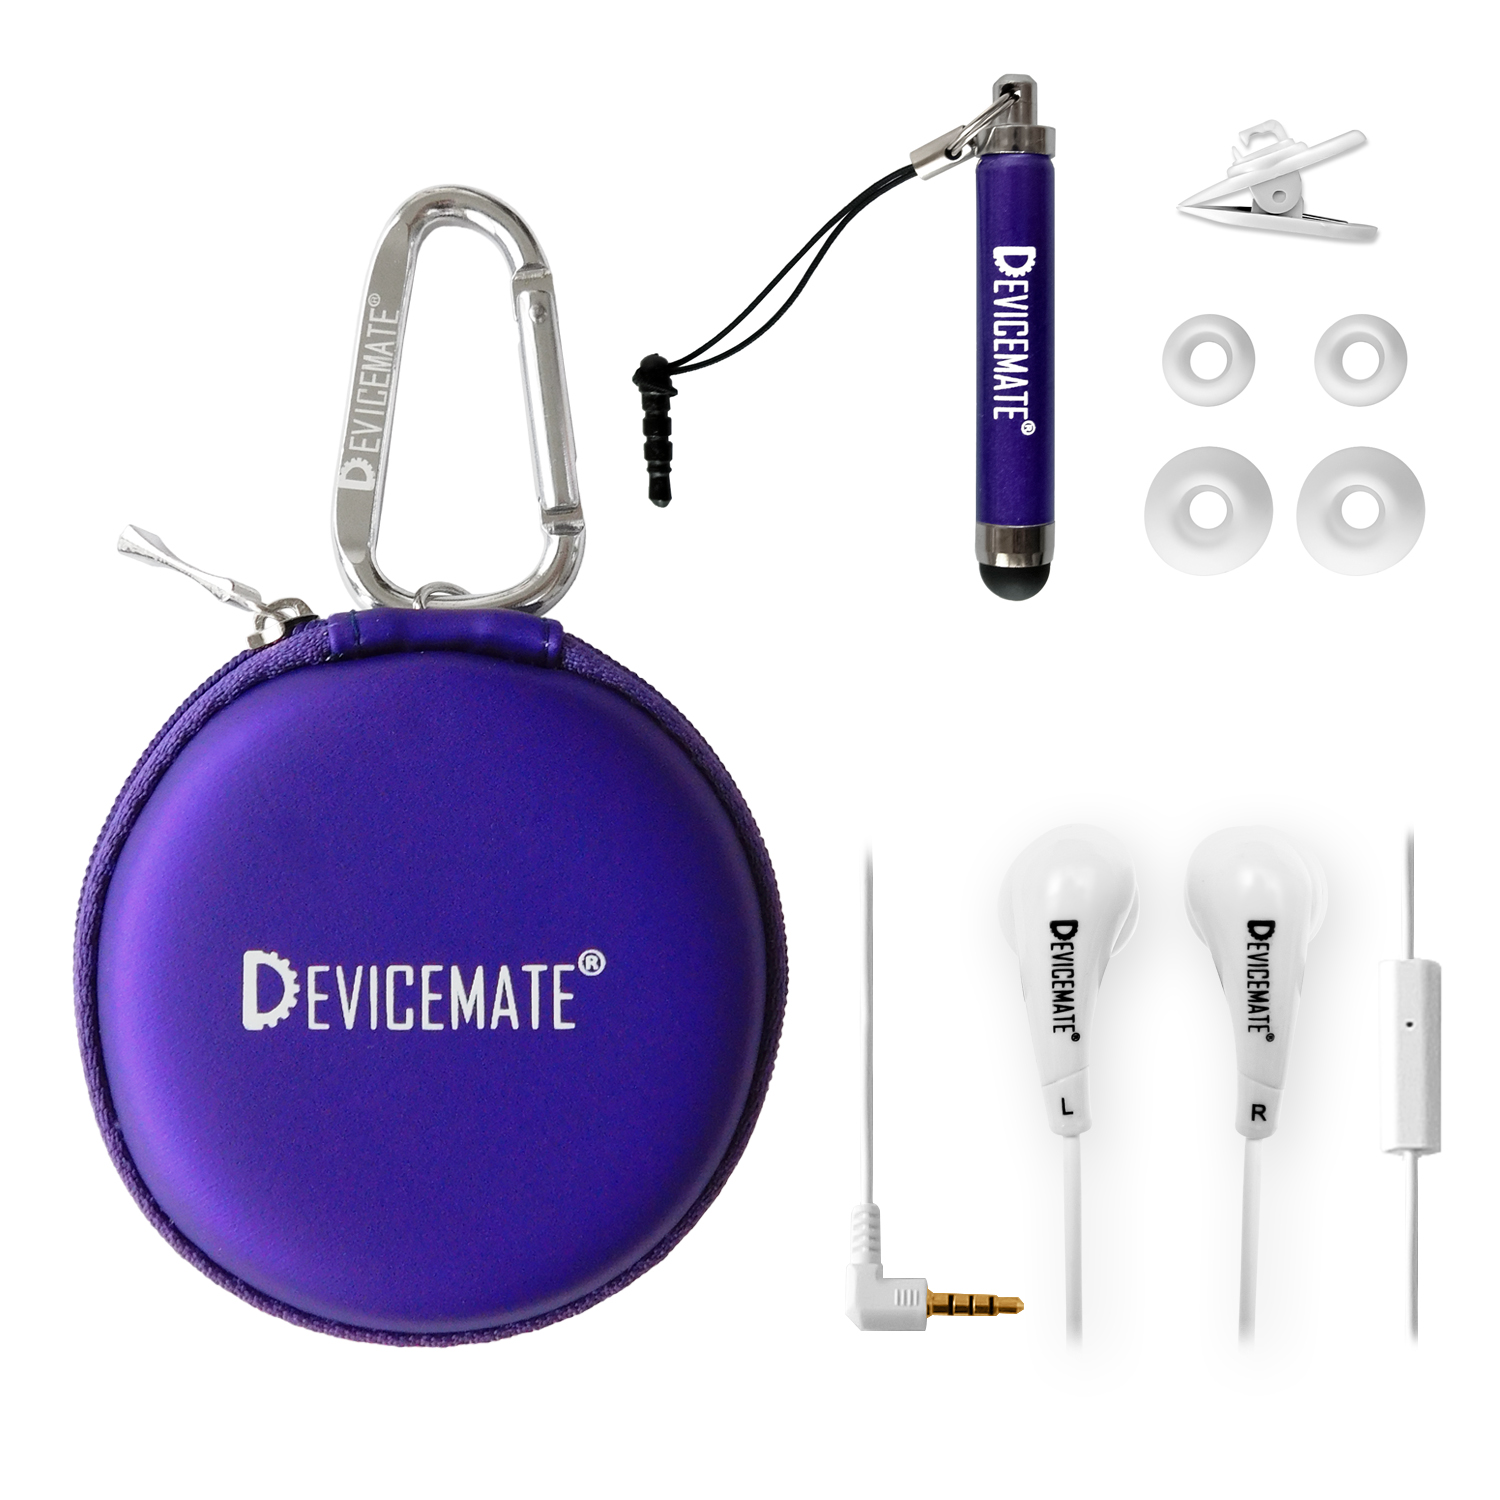 Devicemate SD 455-CPE Earphones w/mic for iPhone [Purple] Case